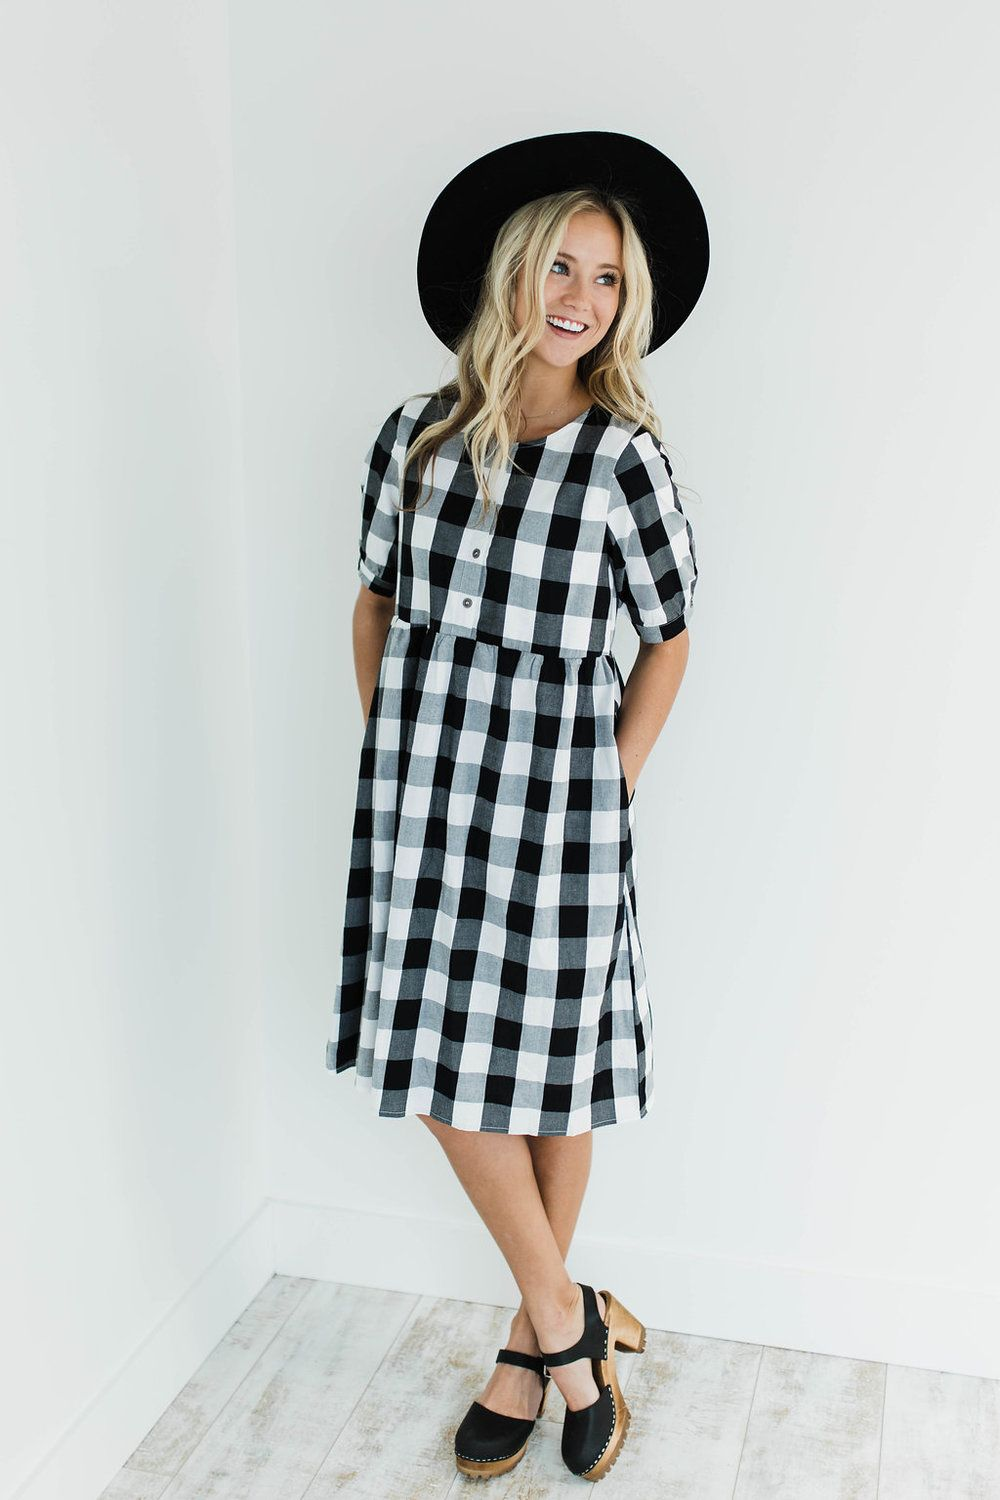 Black White Medium Plaid Dress Functional Button Up Front 1 2 Sleeves Button Cuff Gathered Babydoll Waist Hi Cute Spring Outfits Plaid Dress Sunday Outfits